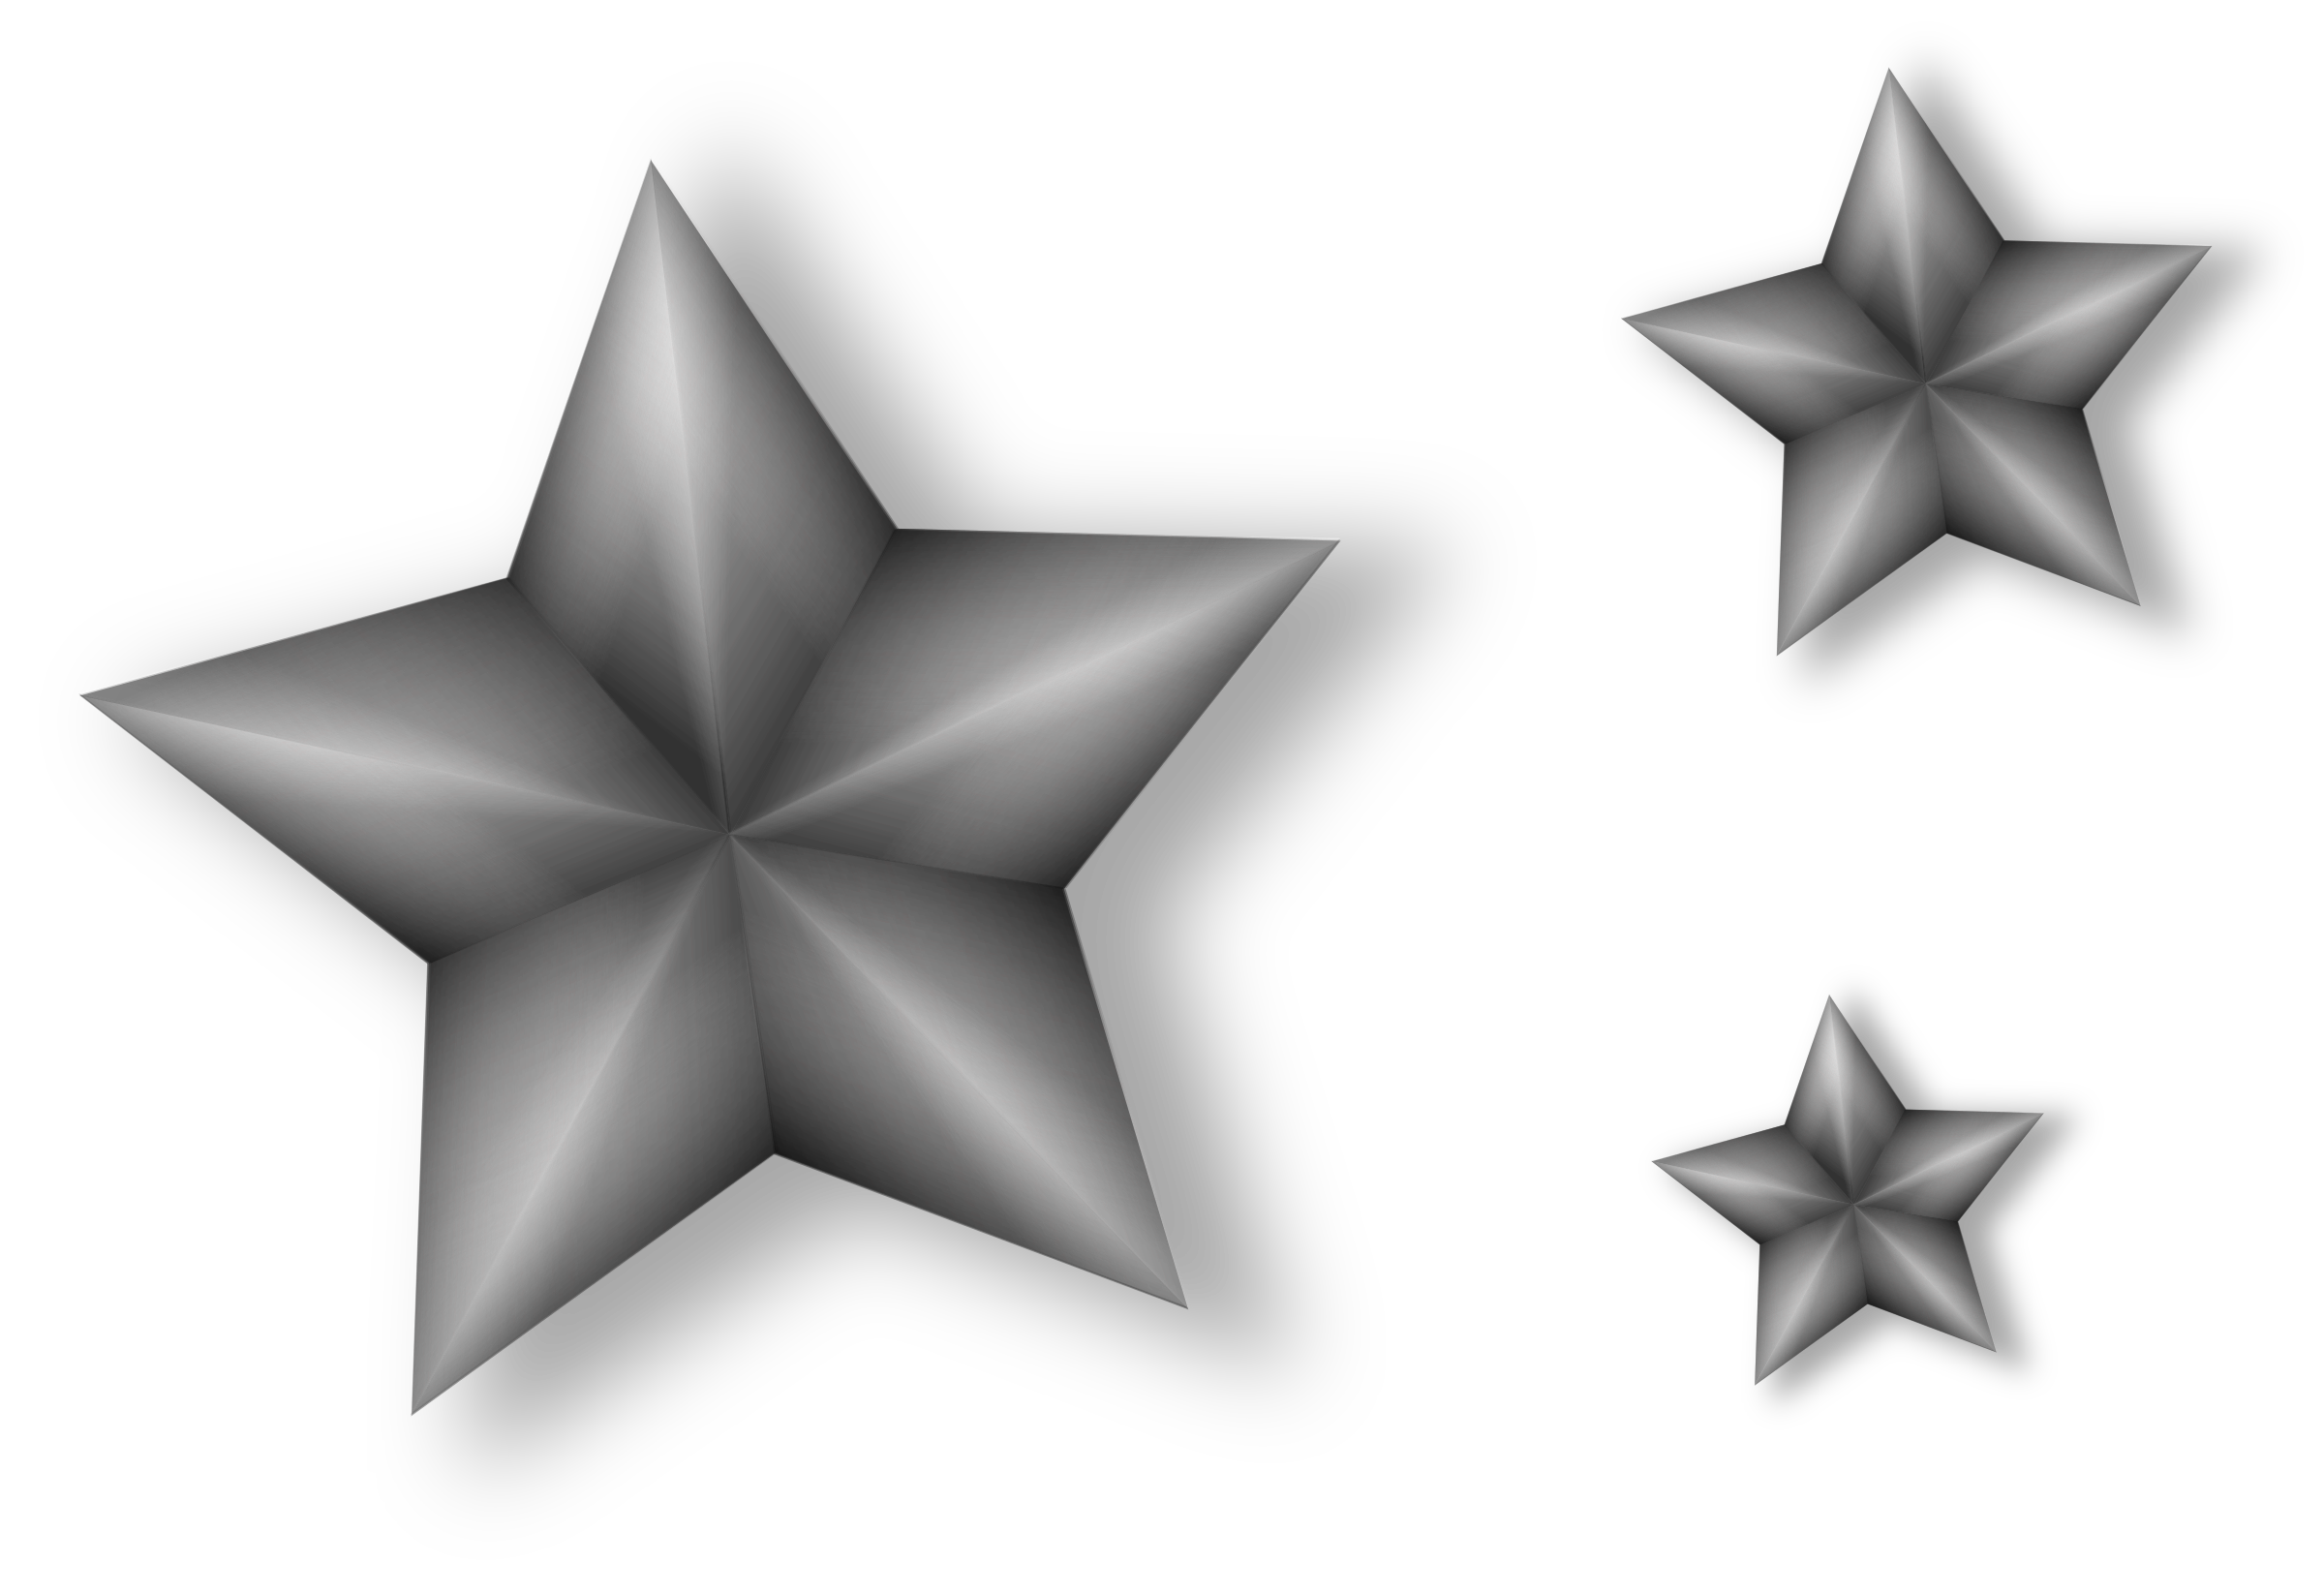 3 Metal Stars with Transparency by Merlin2525